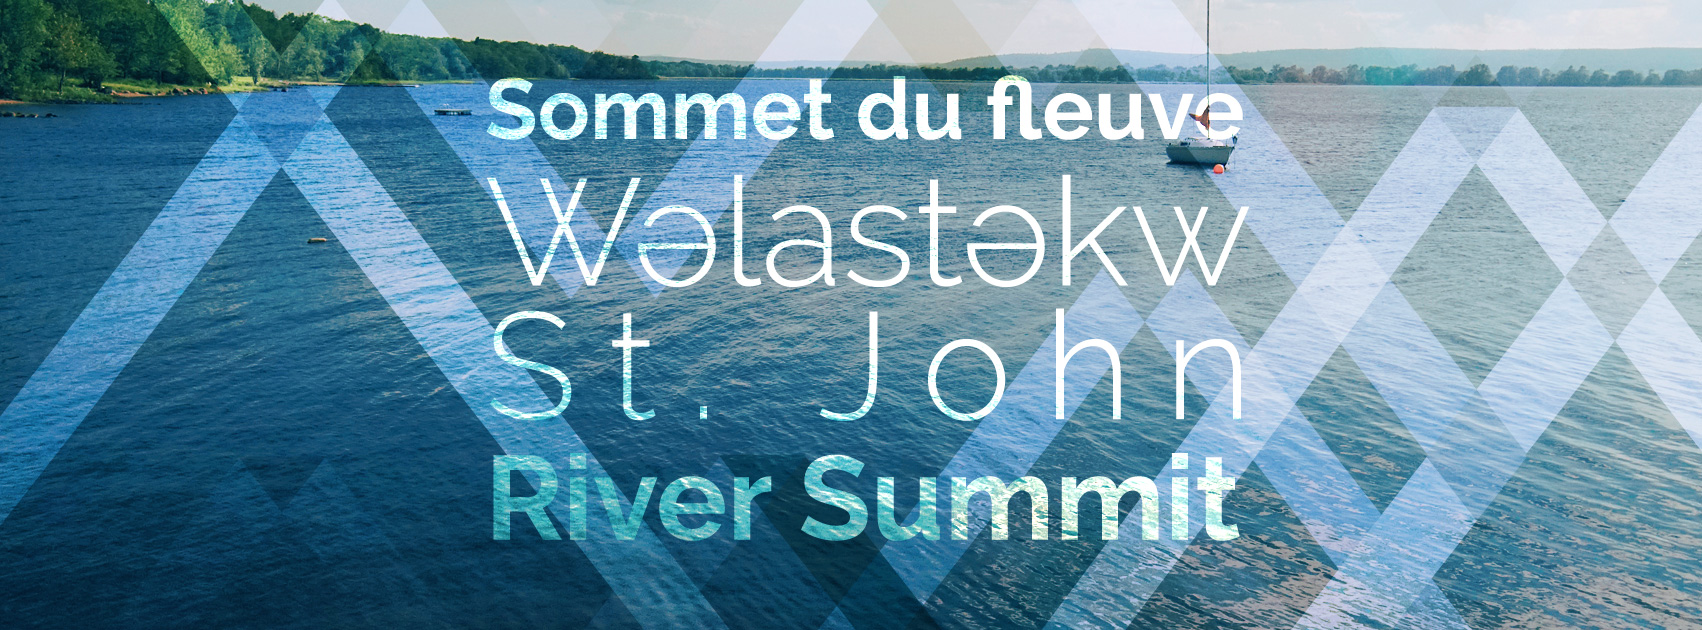 river-summit-banner-2019.jpg